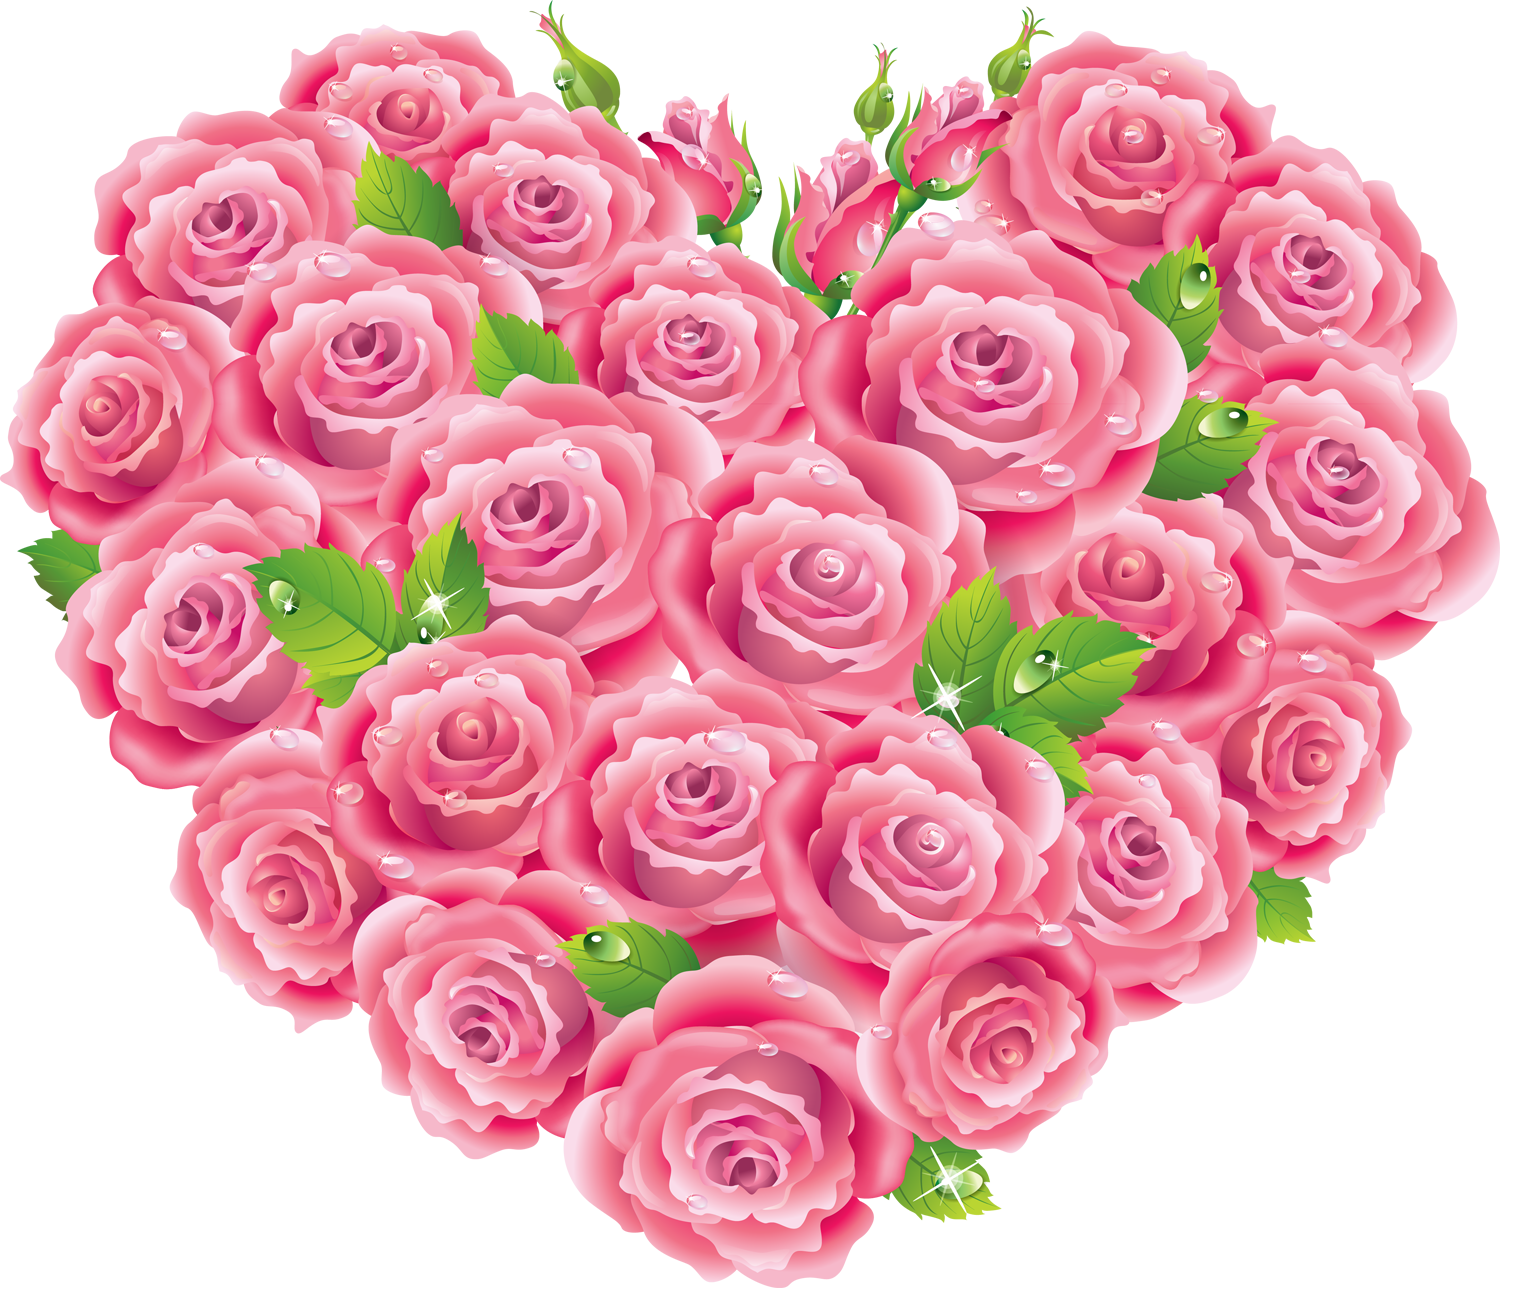 Transparent items pink. Roses heart clipart gallery